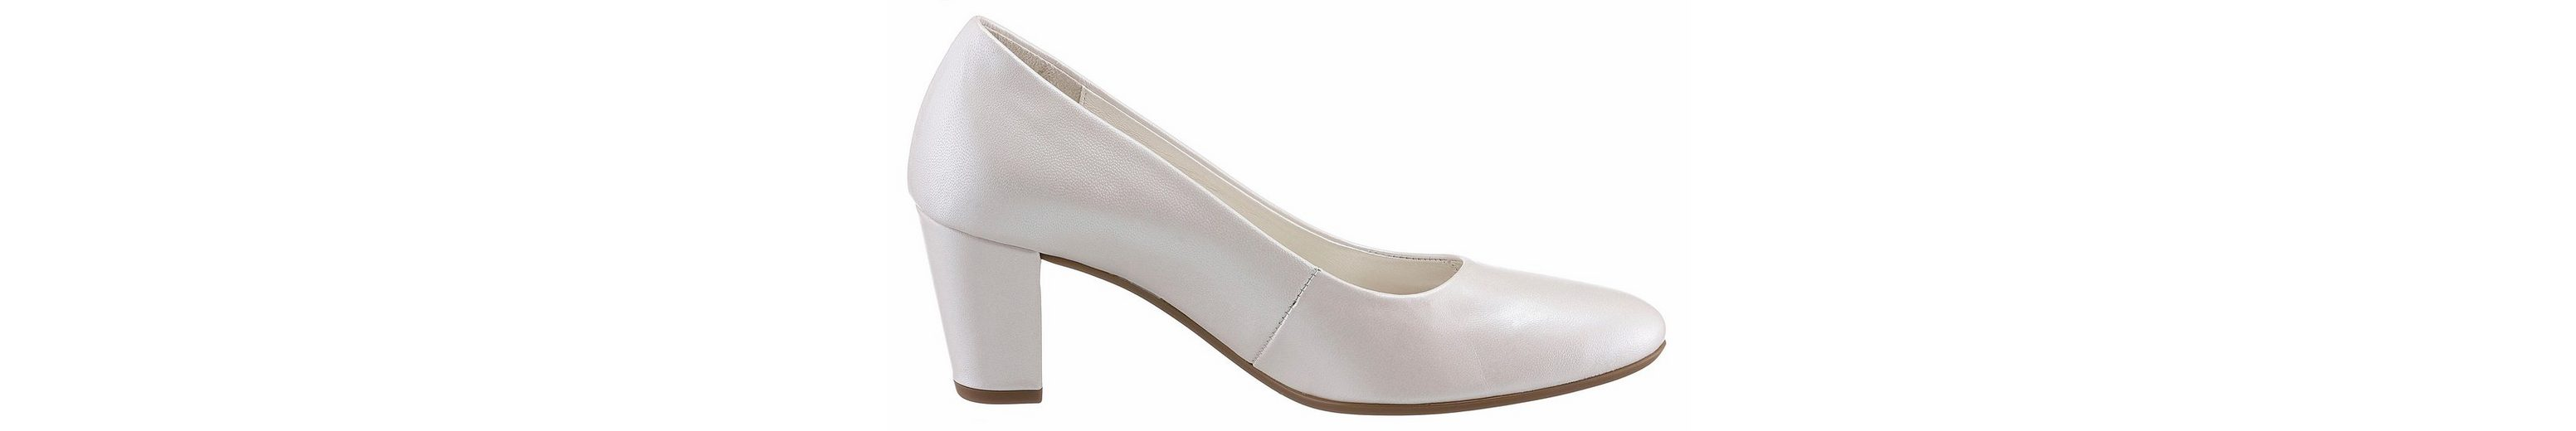 Gabor Pumps, ideal als Brautschuh